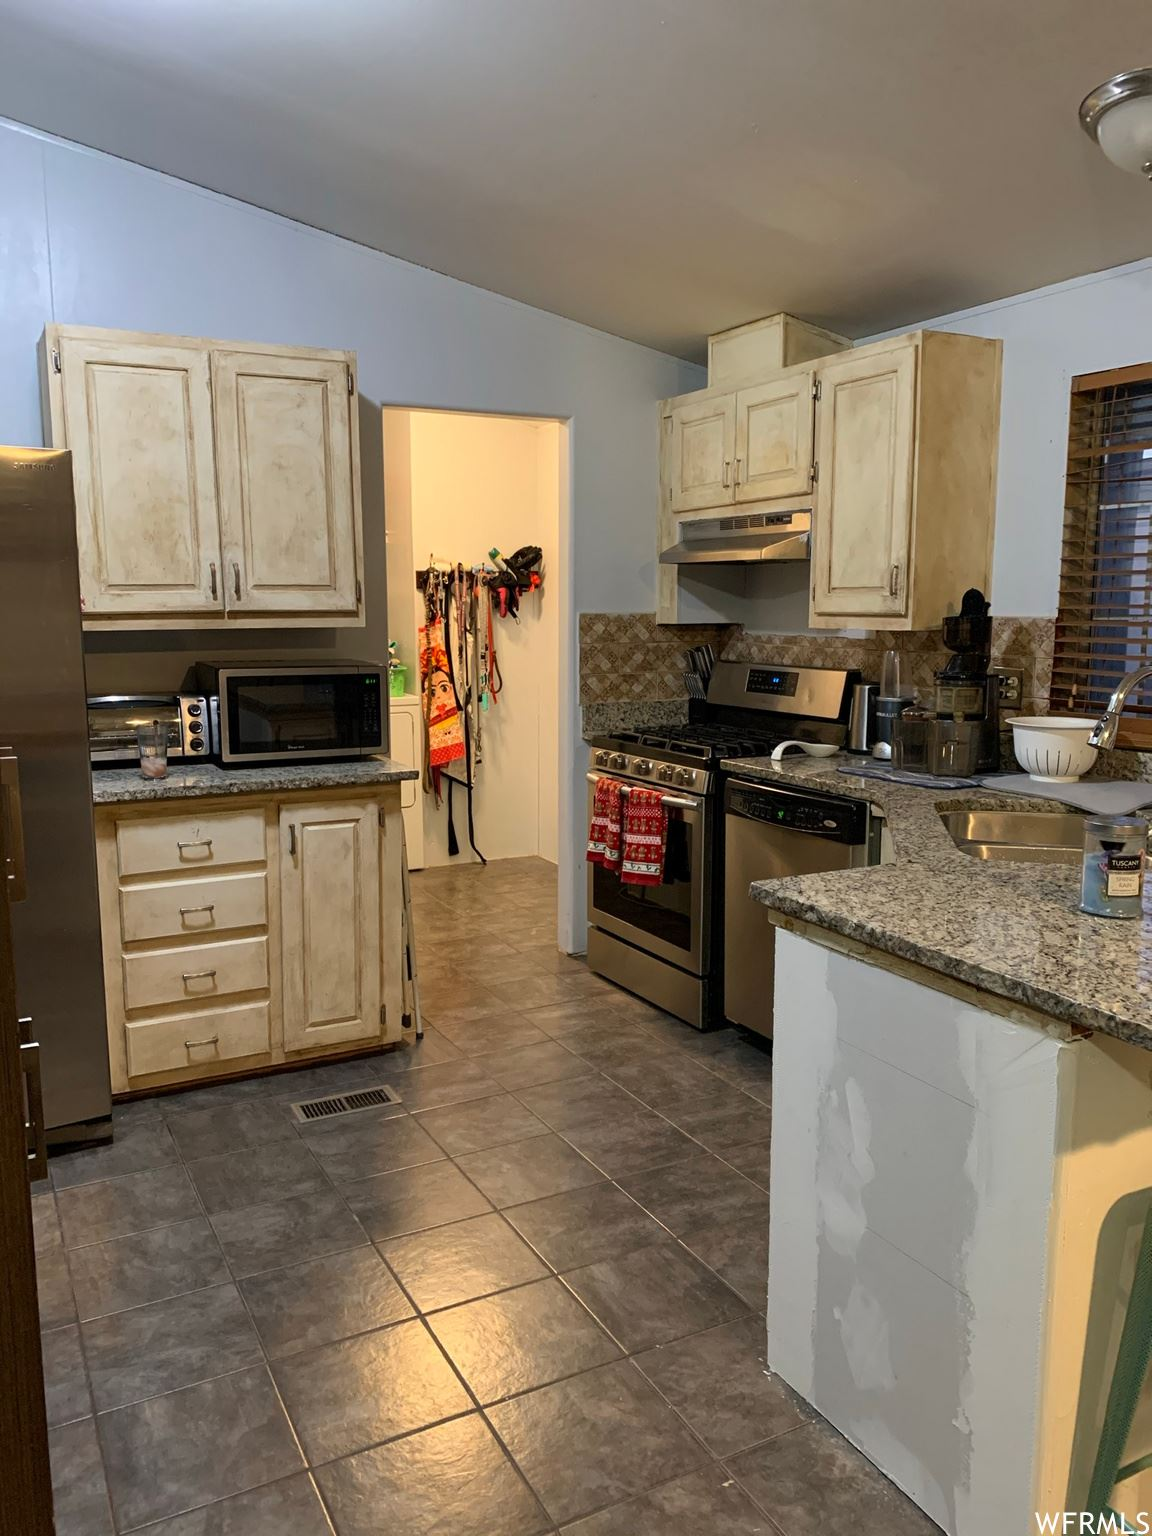 Photo of 2756 S 2580 W #157, West Valley City, UT 84119 (MLS # 1727555)